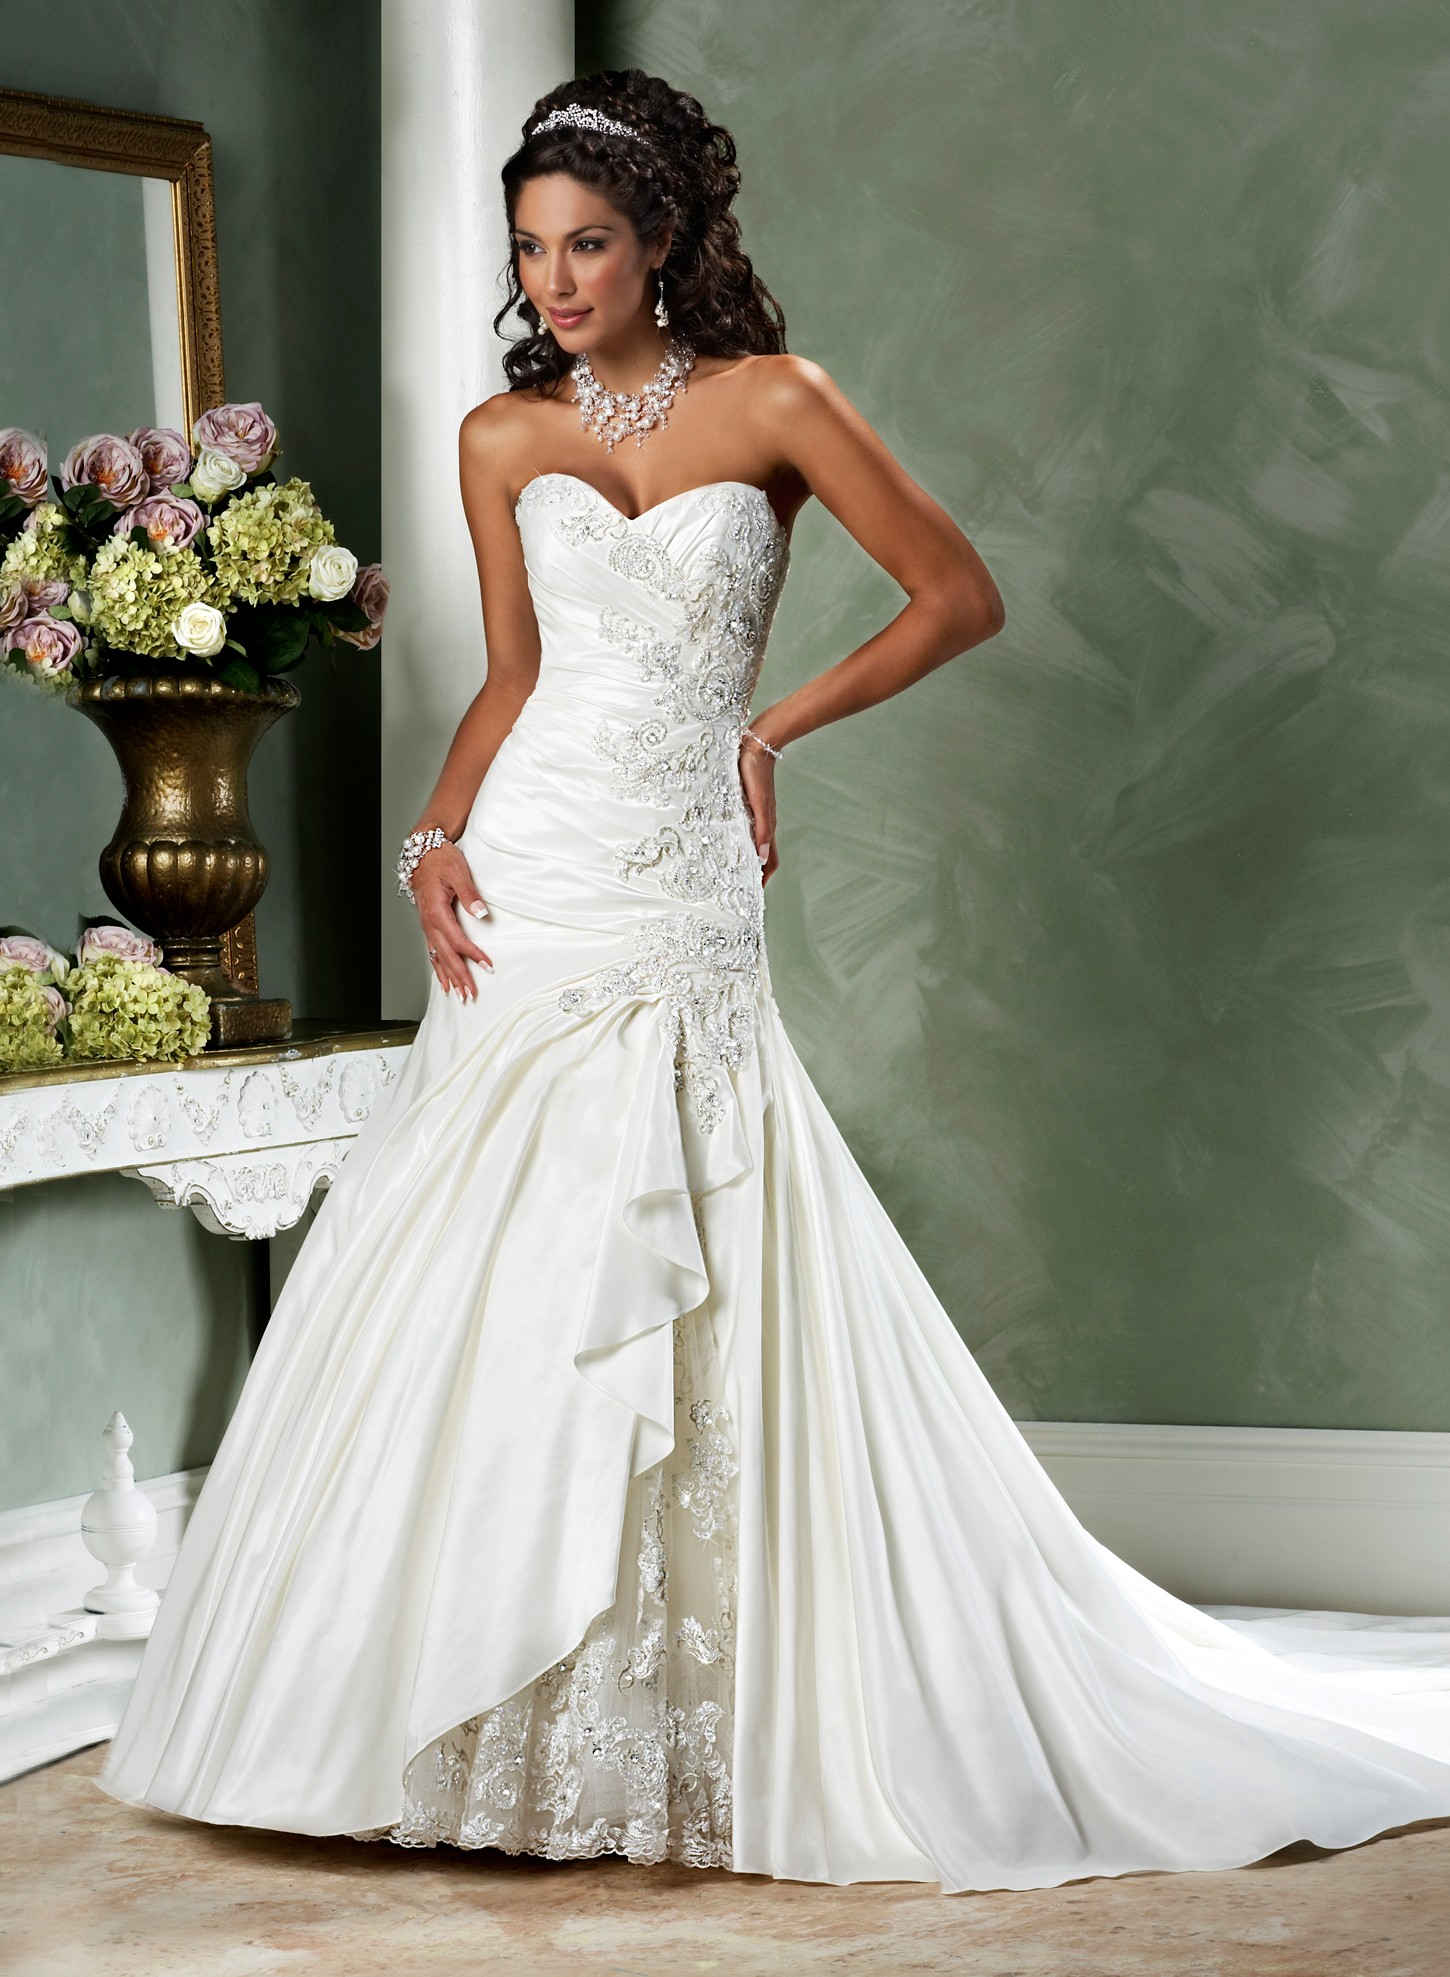 Types of sweetheart wedding dresses for What kind of dress do you wear to a wedding